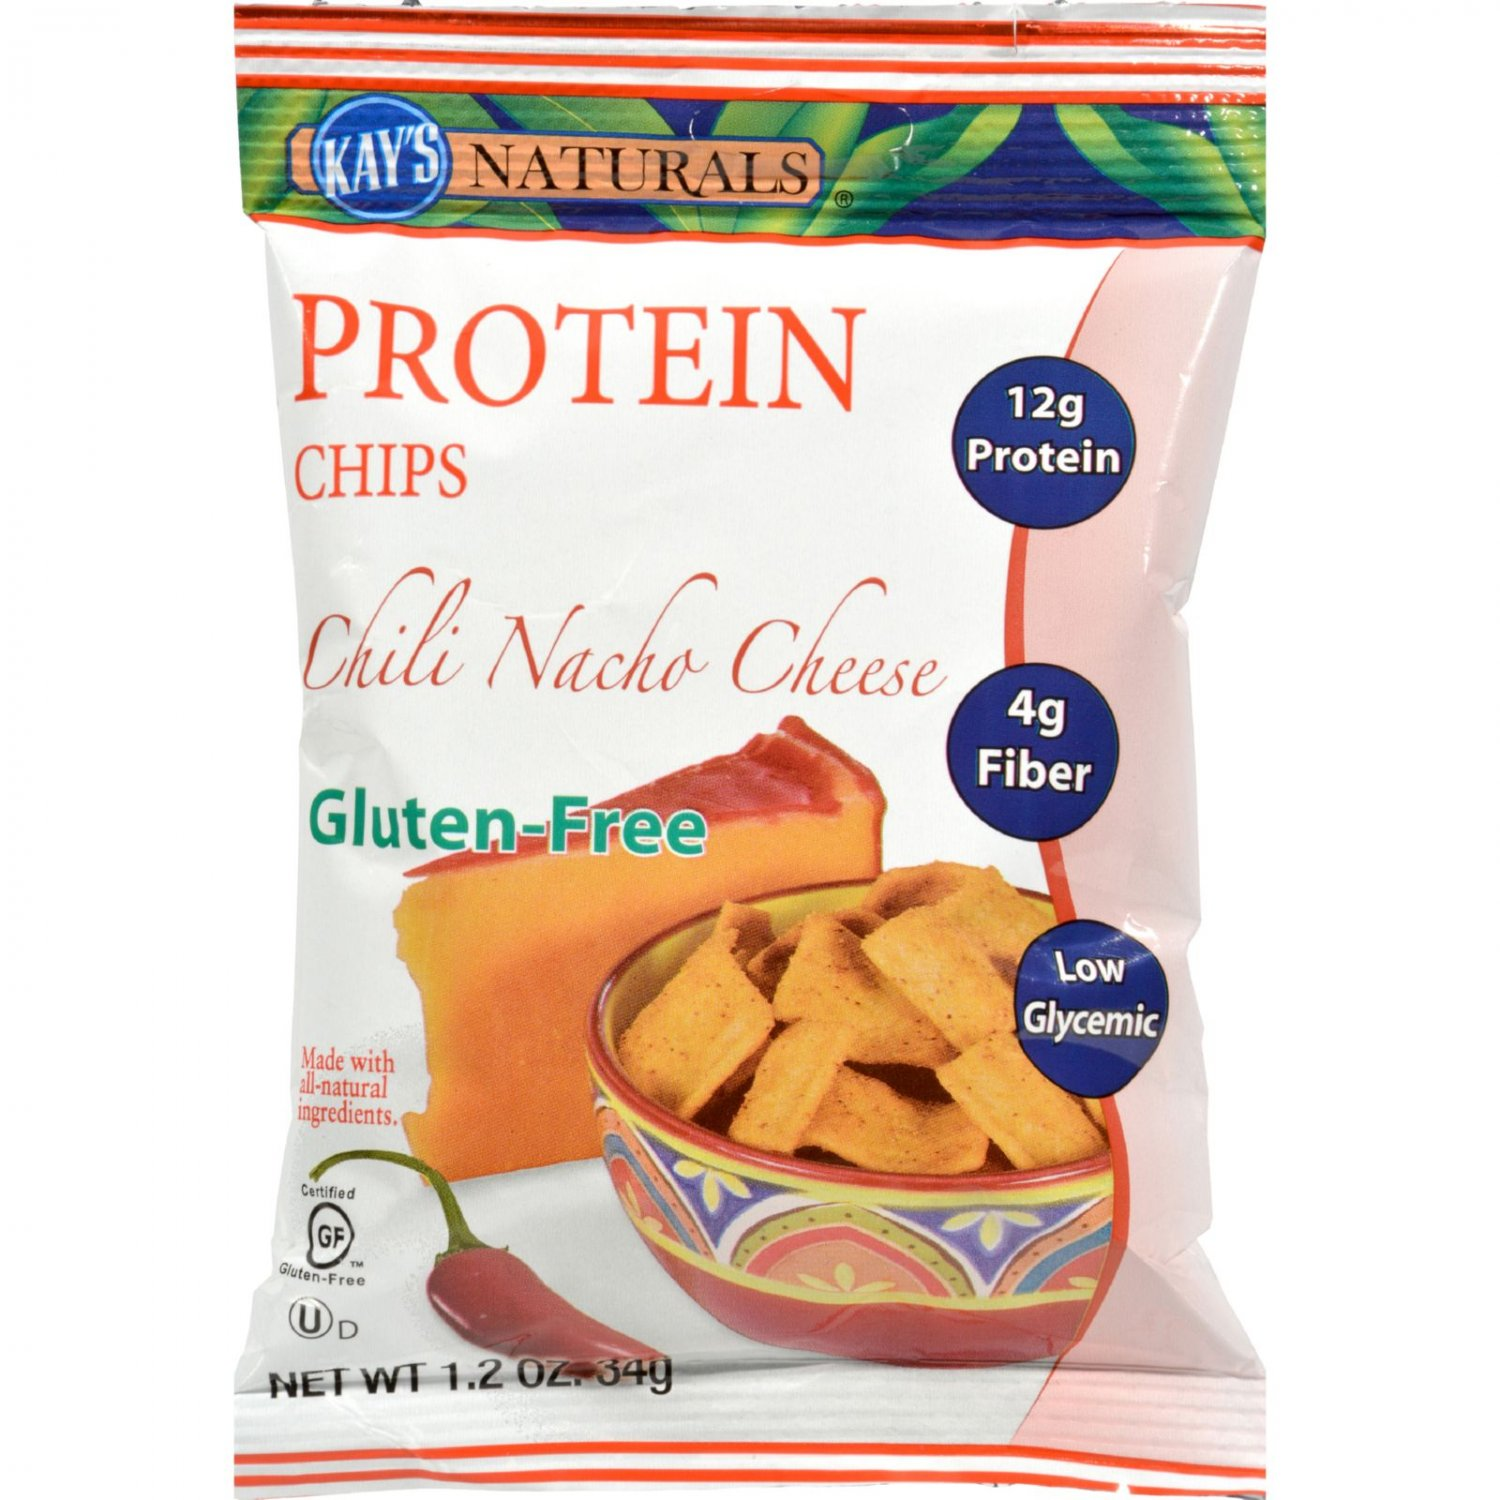 Kay's Naturals Better Balance Protein Chips Chili Nacho Cheese - 1.2 oz - Case of 6